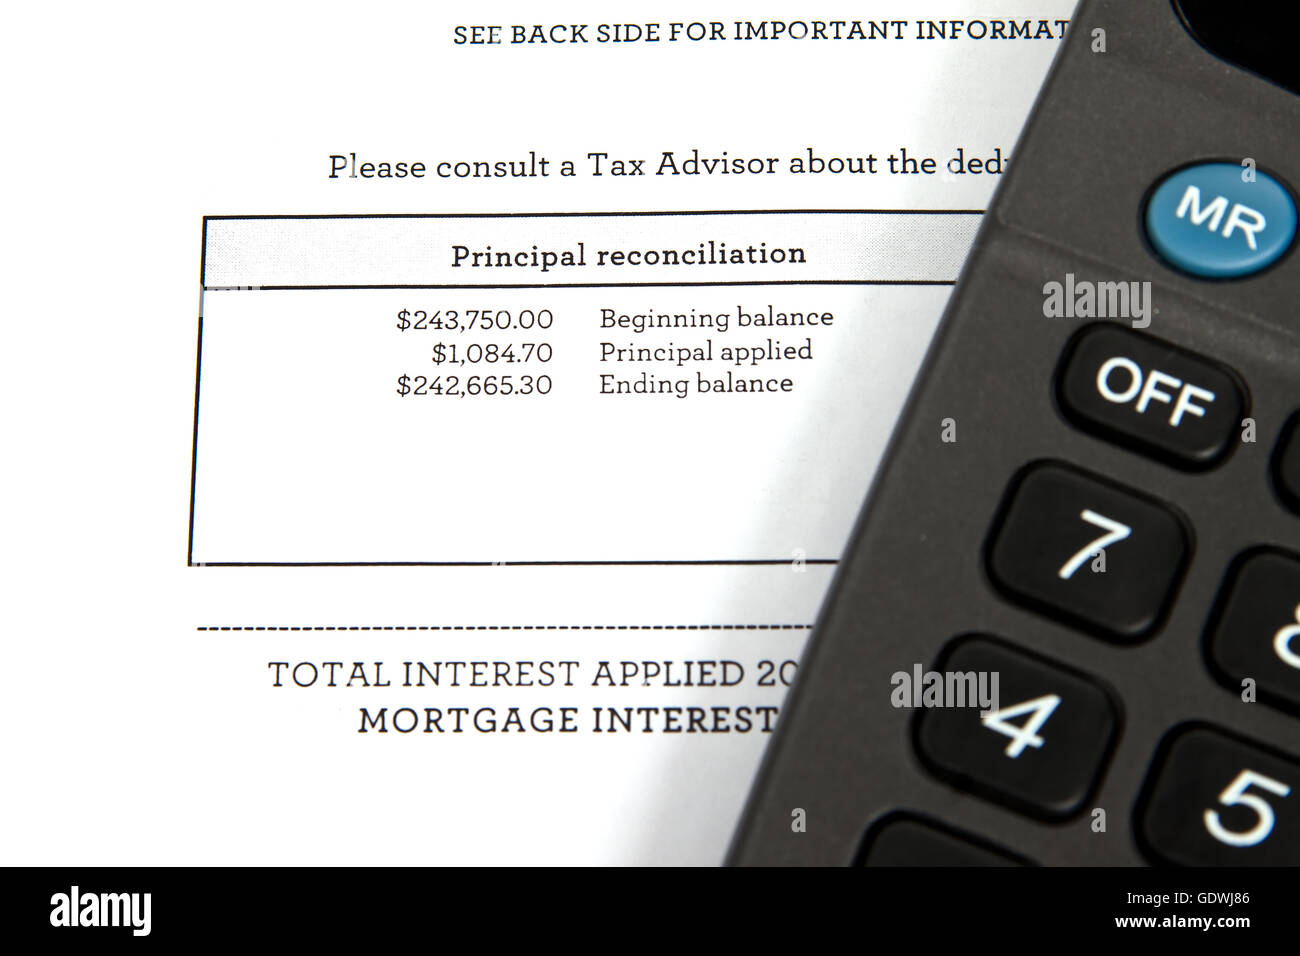 Tax document showing mortgage balance - Stock Image